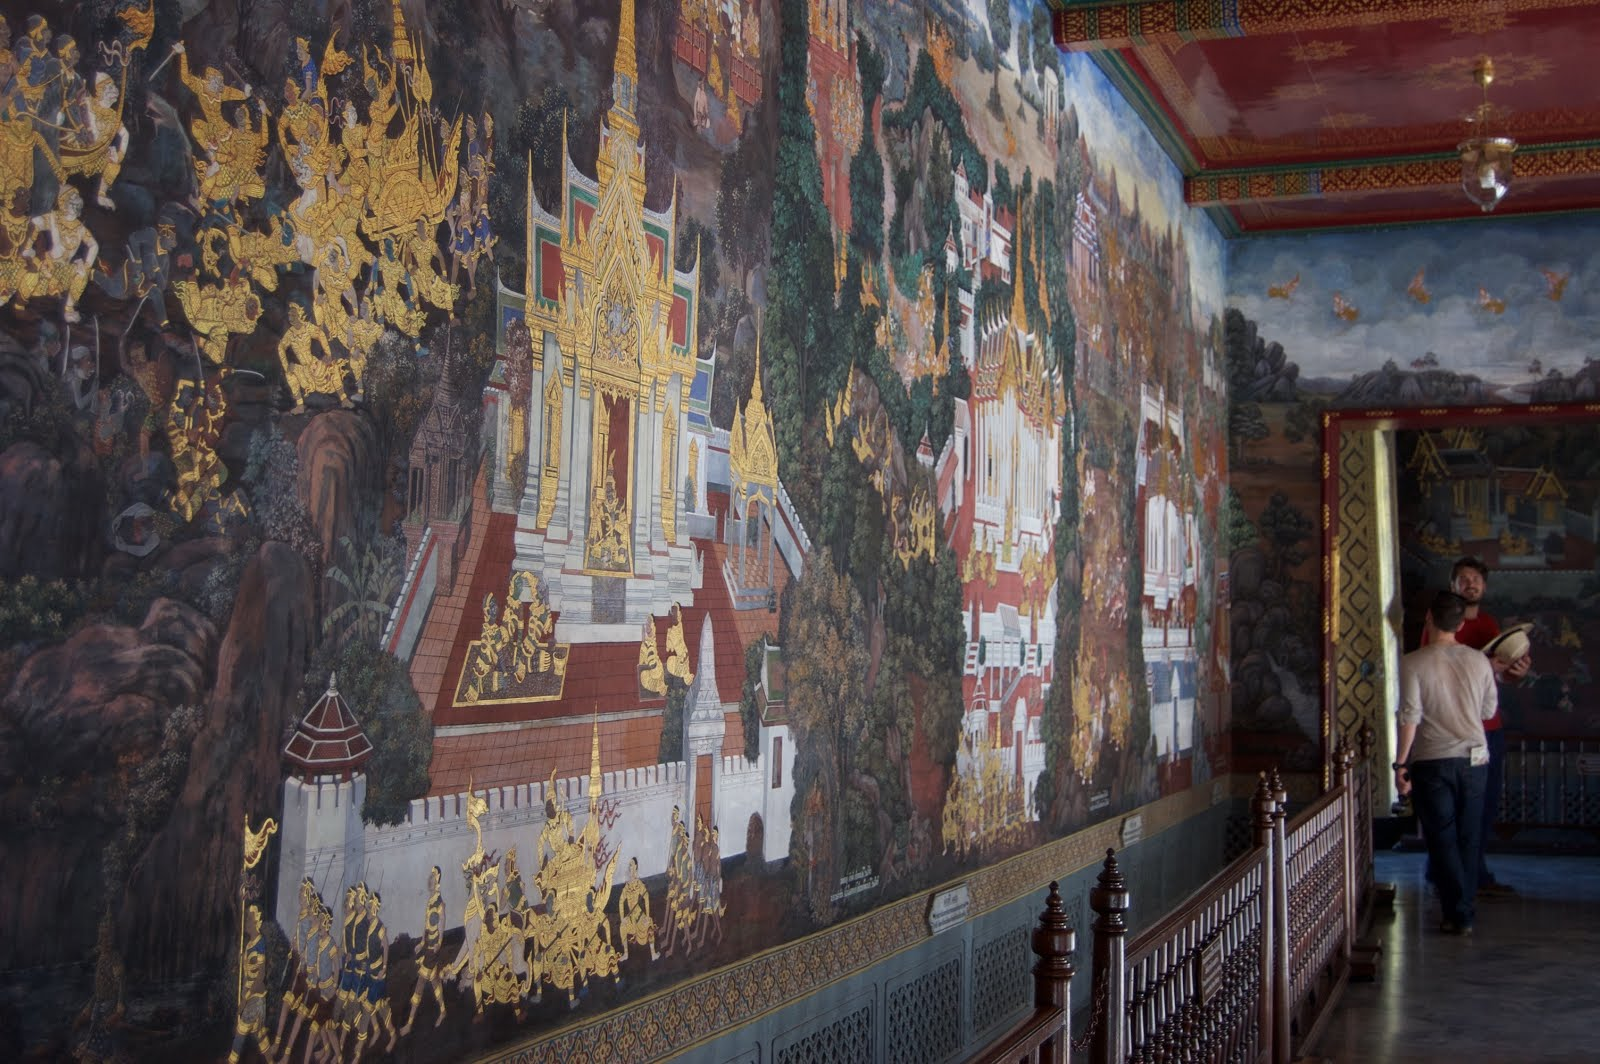 Scenes from the Grand Palace